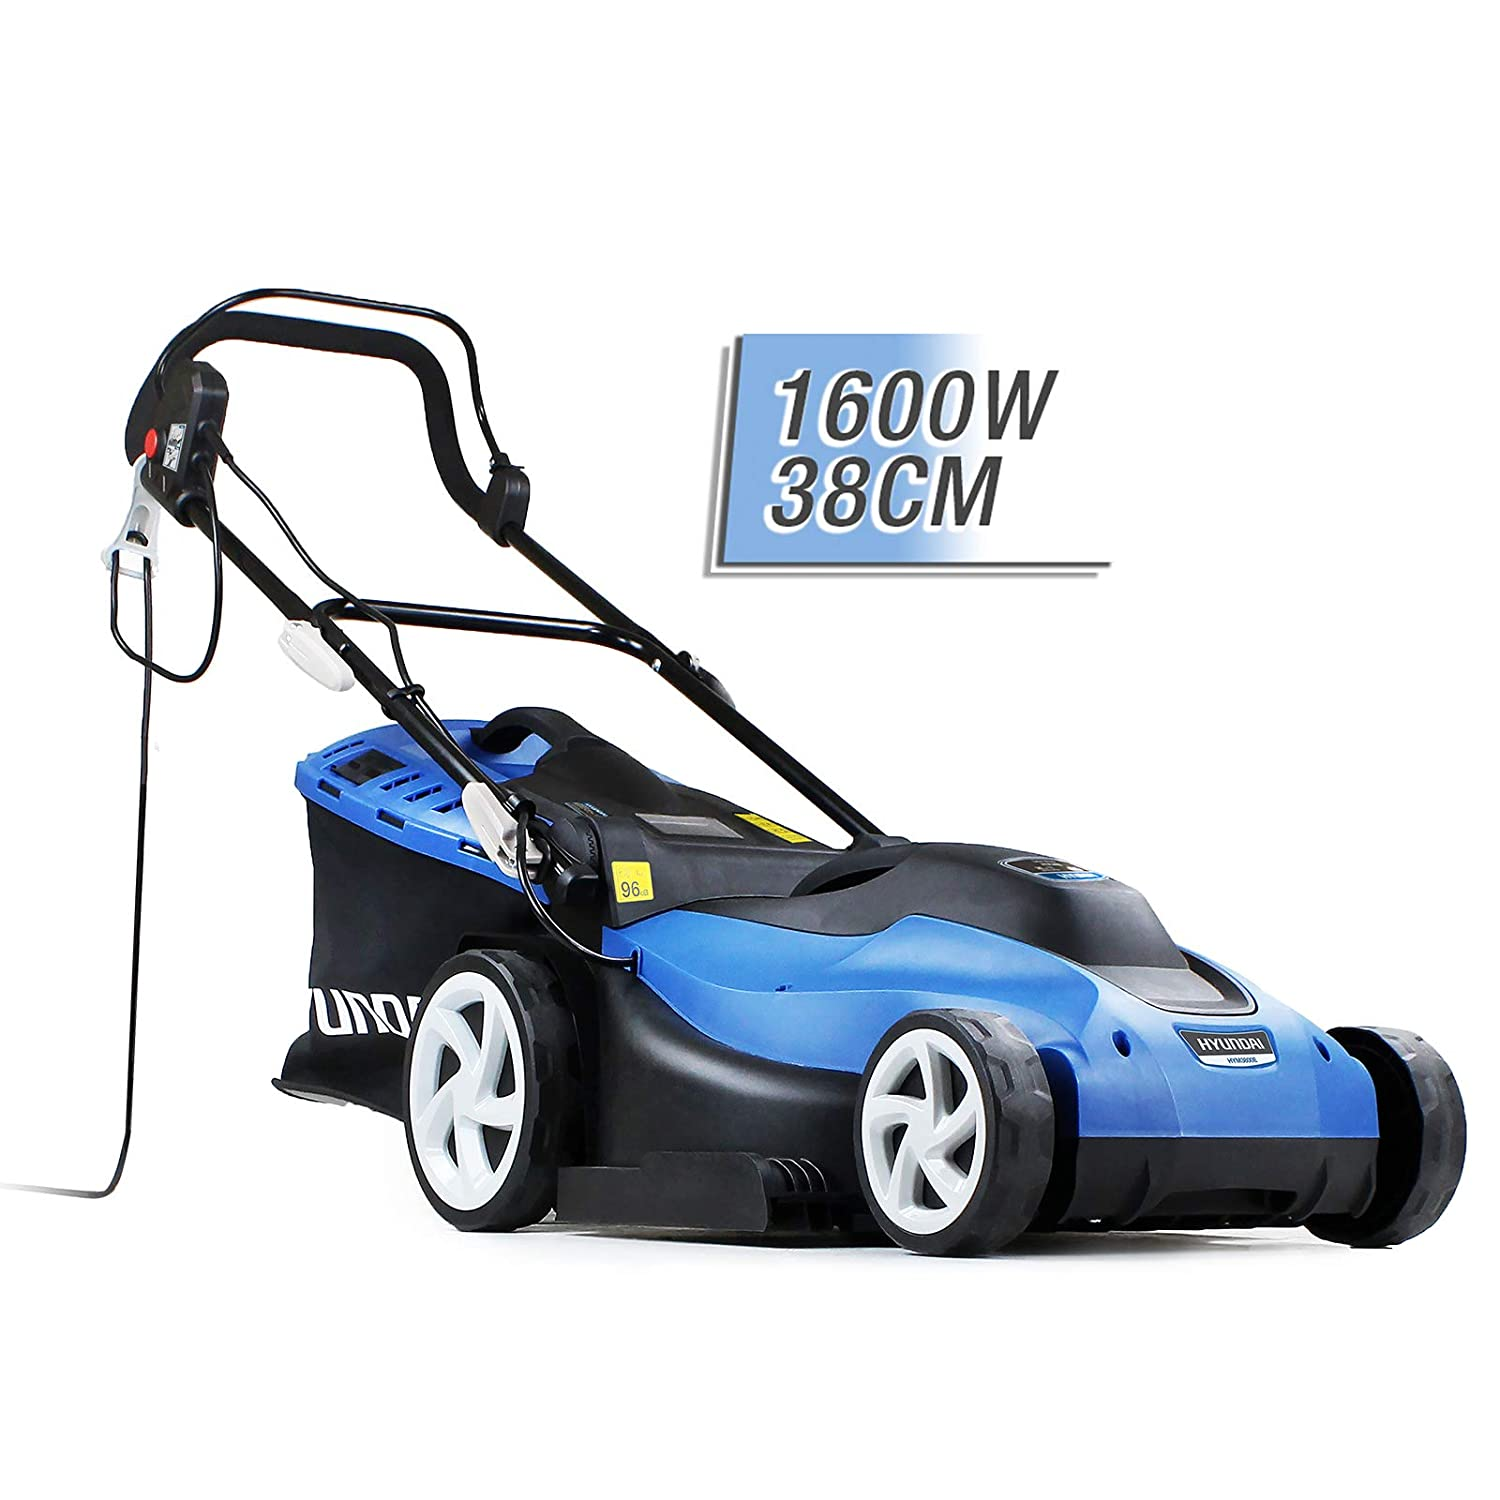 Hyundai HYM3800E Corded Electric Lawnmower 1600W 380mm/ 38cm /15